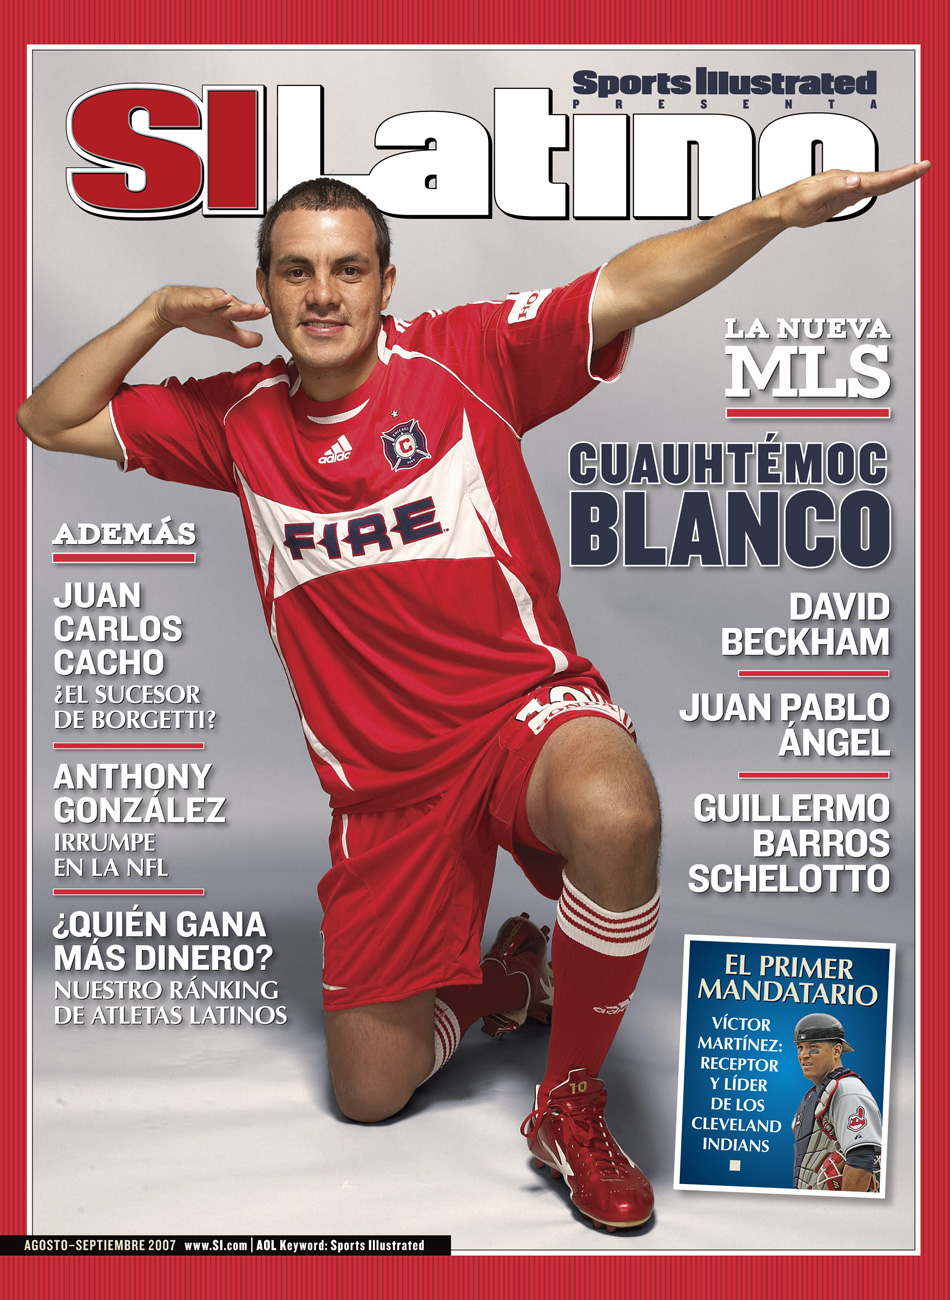 Blanco's arrival in MLS with the Chicago Fire made for some front-cover headlines.